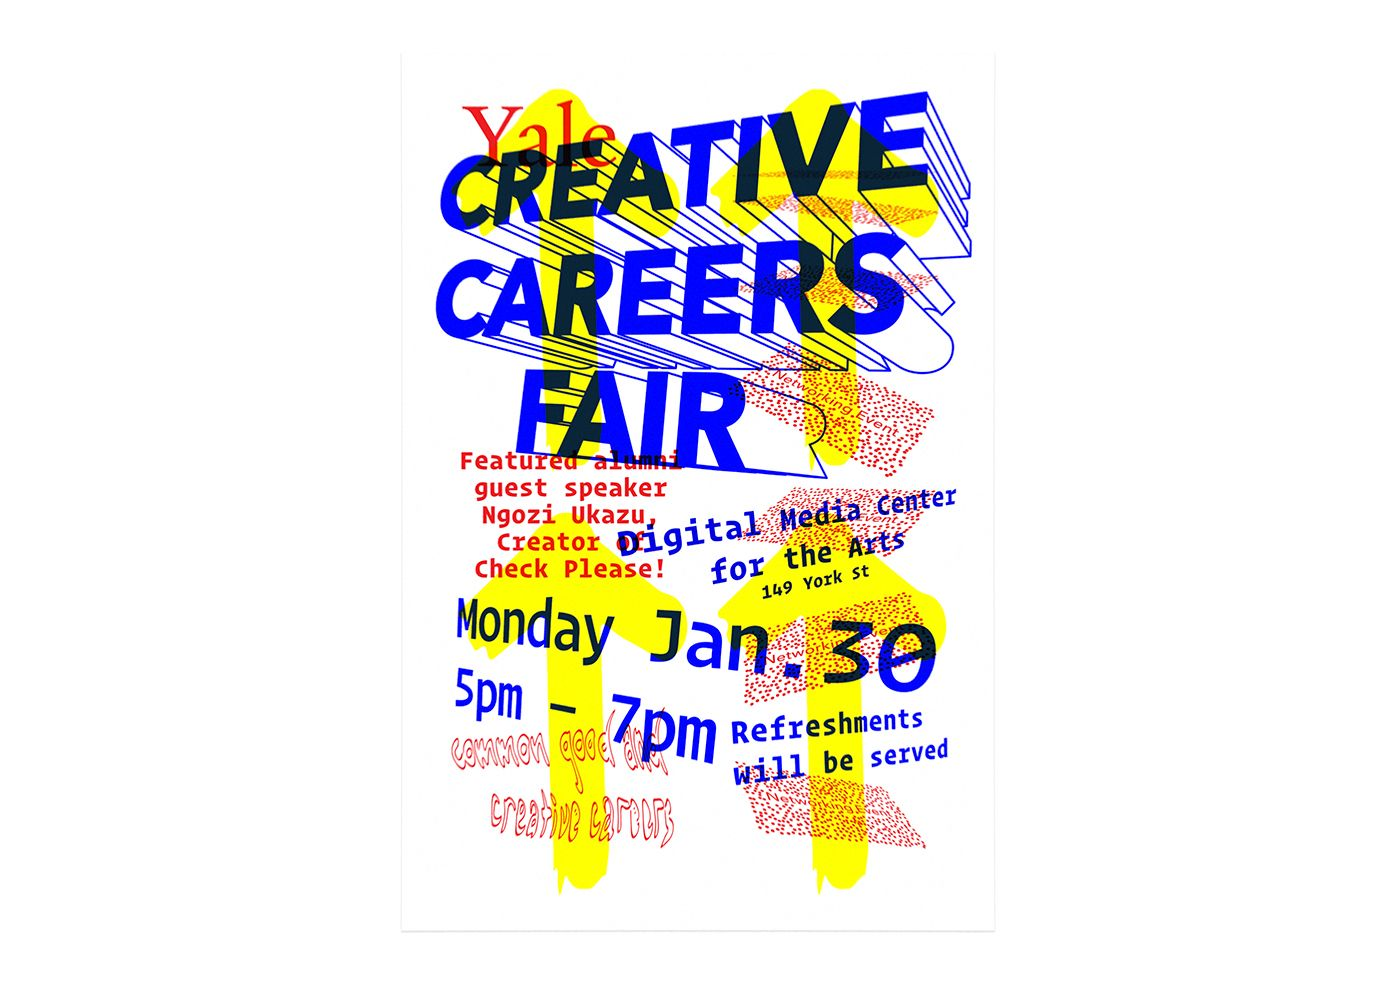 Yale Creative Careers Fair poster by Isaac Morrier